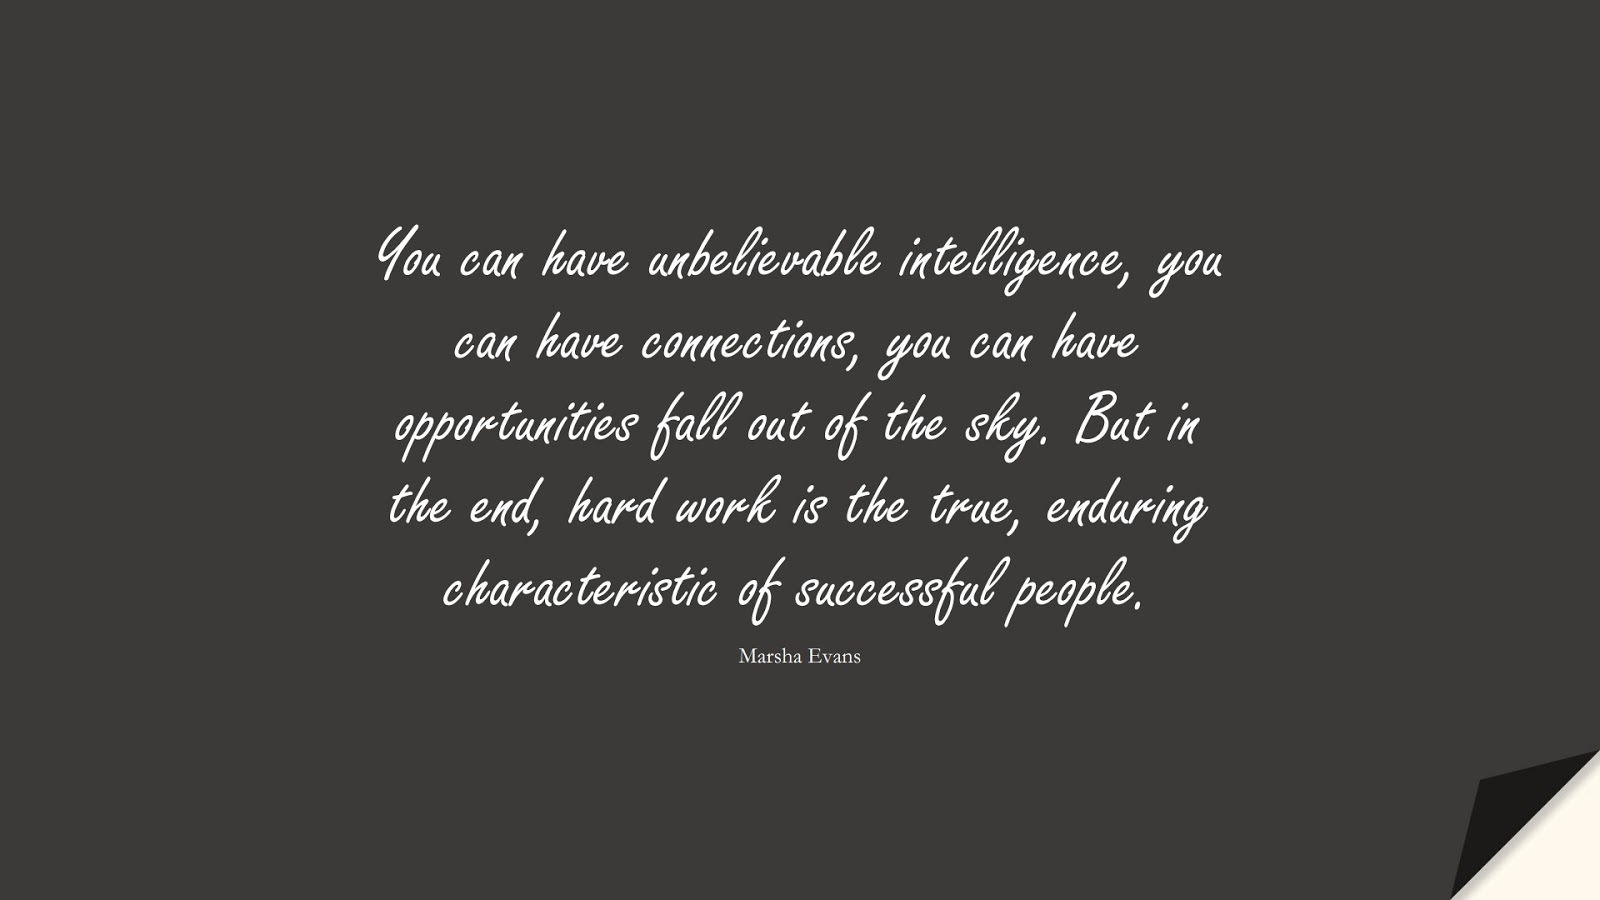 You can have unbelievable intelligence, you can have connections, you can have opportunities fall out of the sky. But in the end, hard work is the true, enduring characteristic of successful people. (Marsha Evans);  #NeverGiveUpQuotes